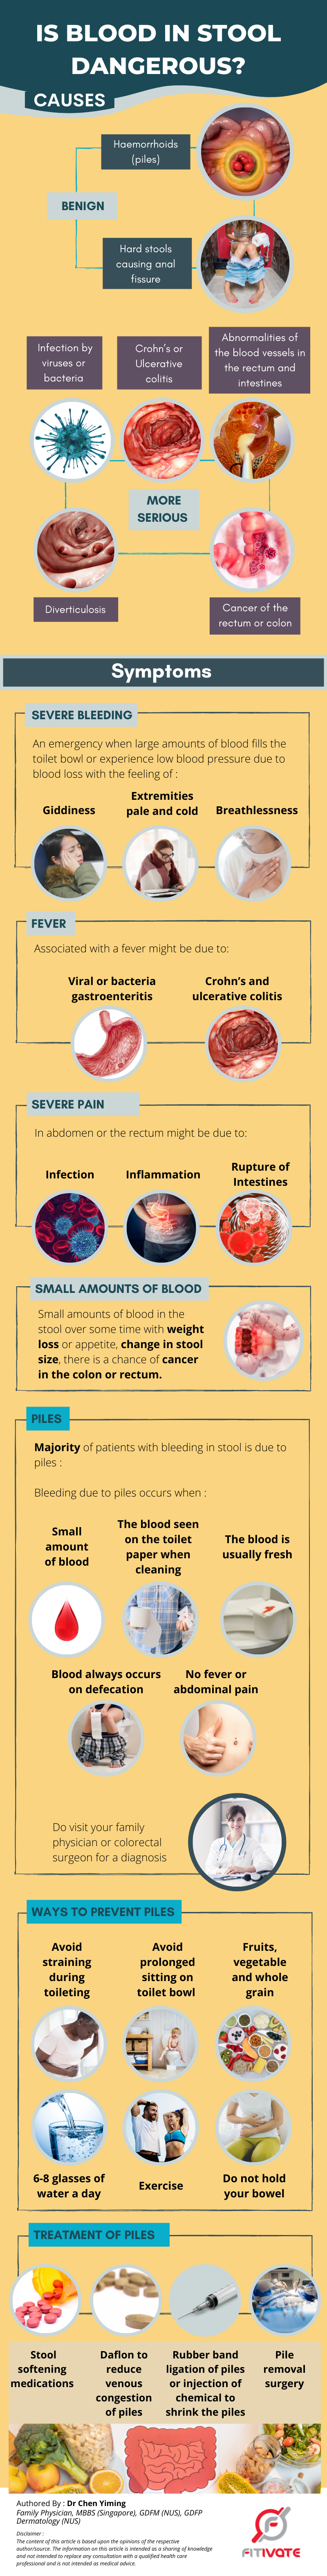 Blood in stool